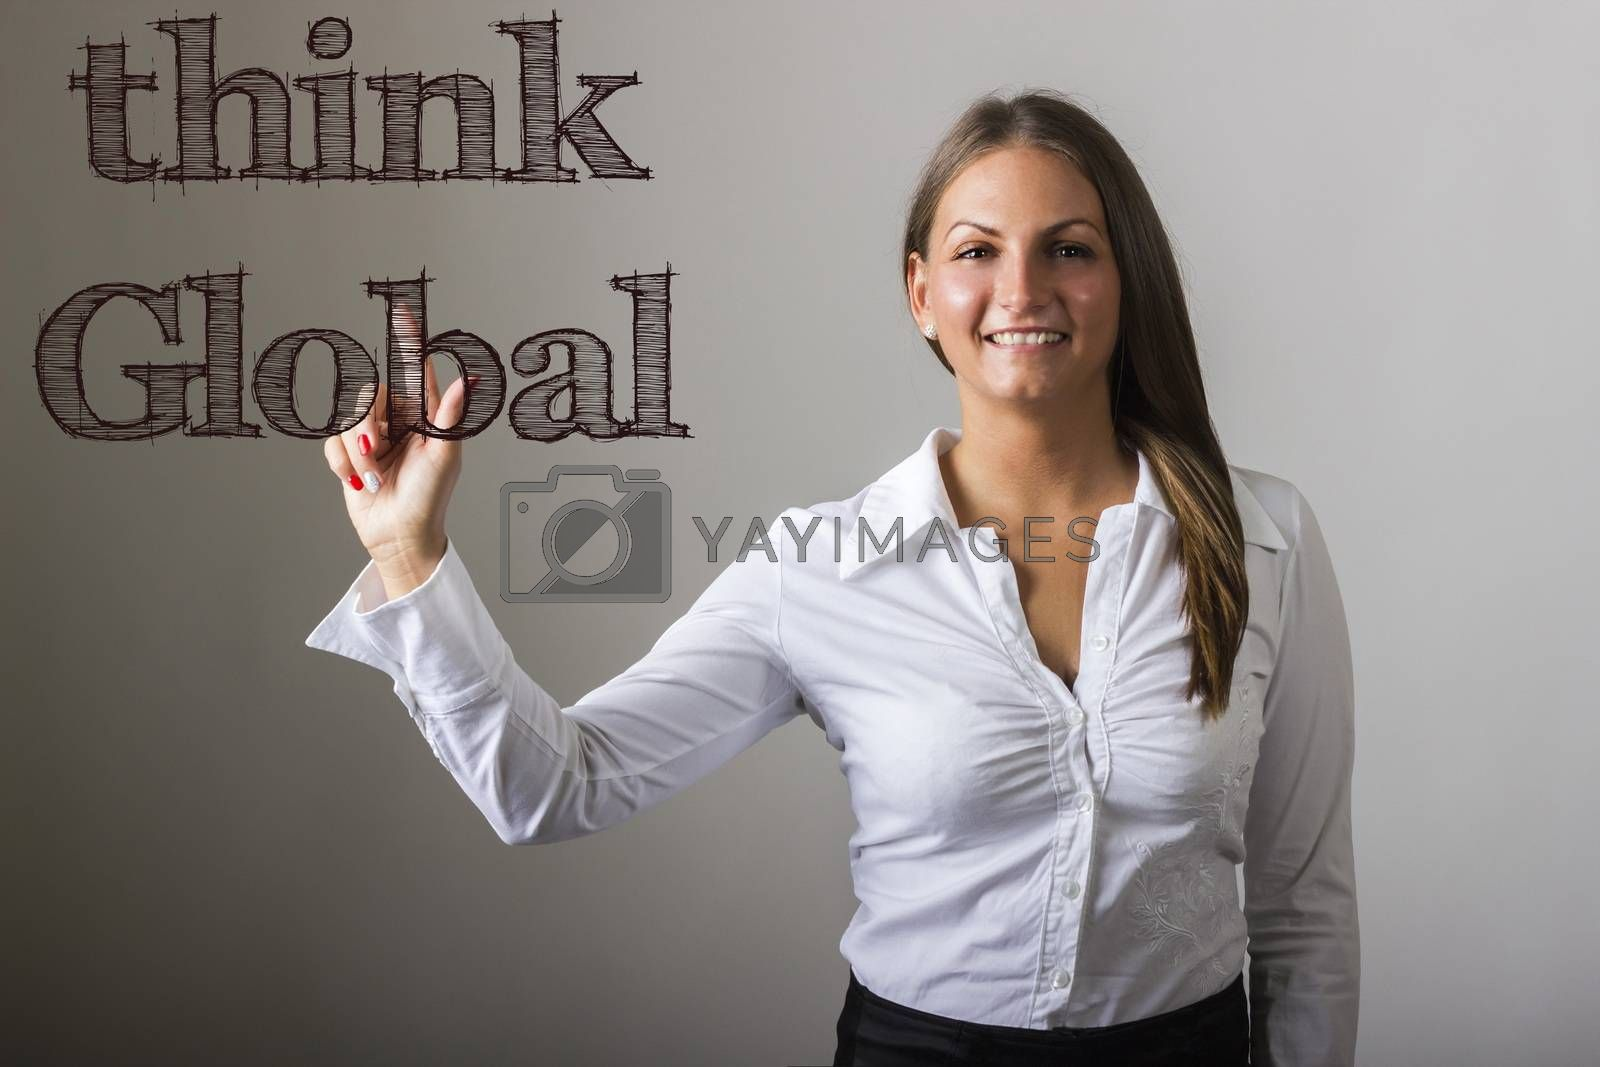 Think Global - Beautiful girl touching text on transparent surface - horizontal image